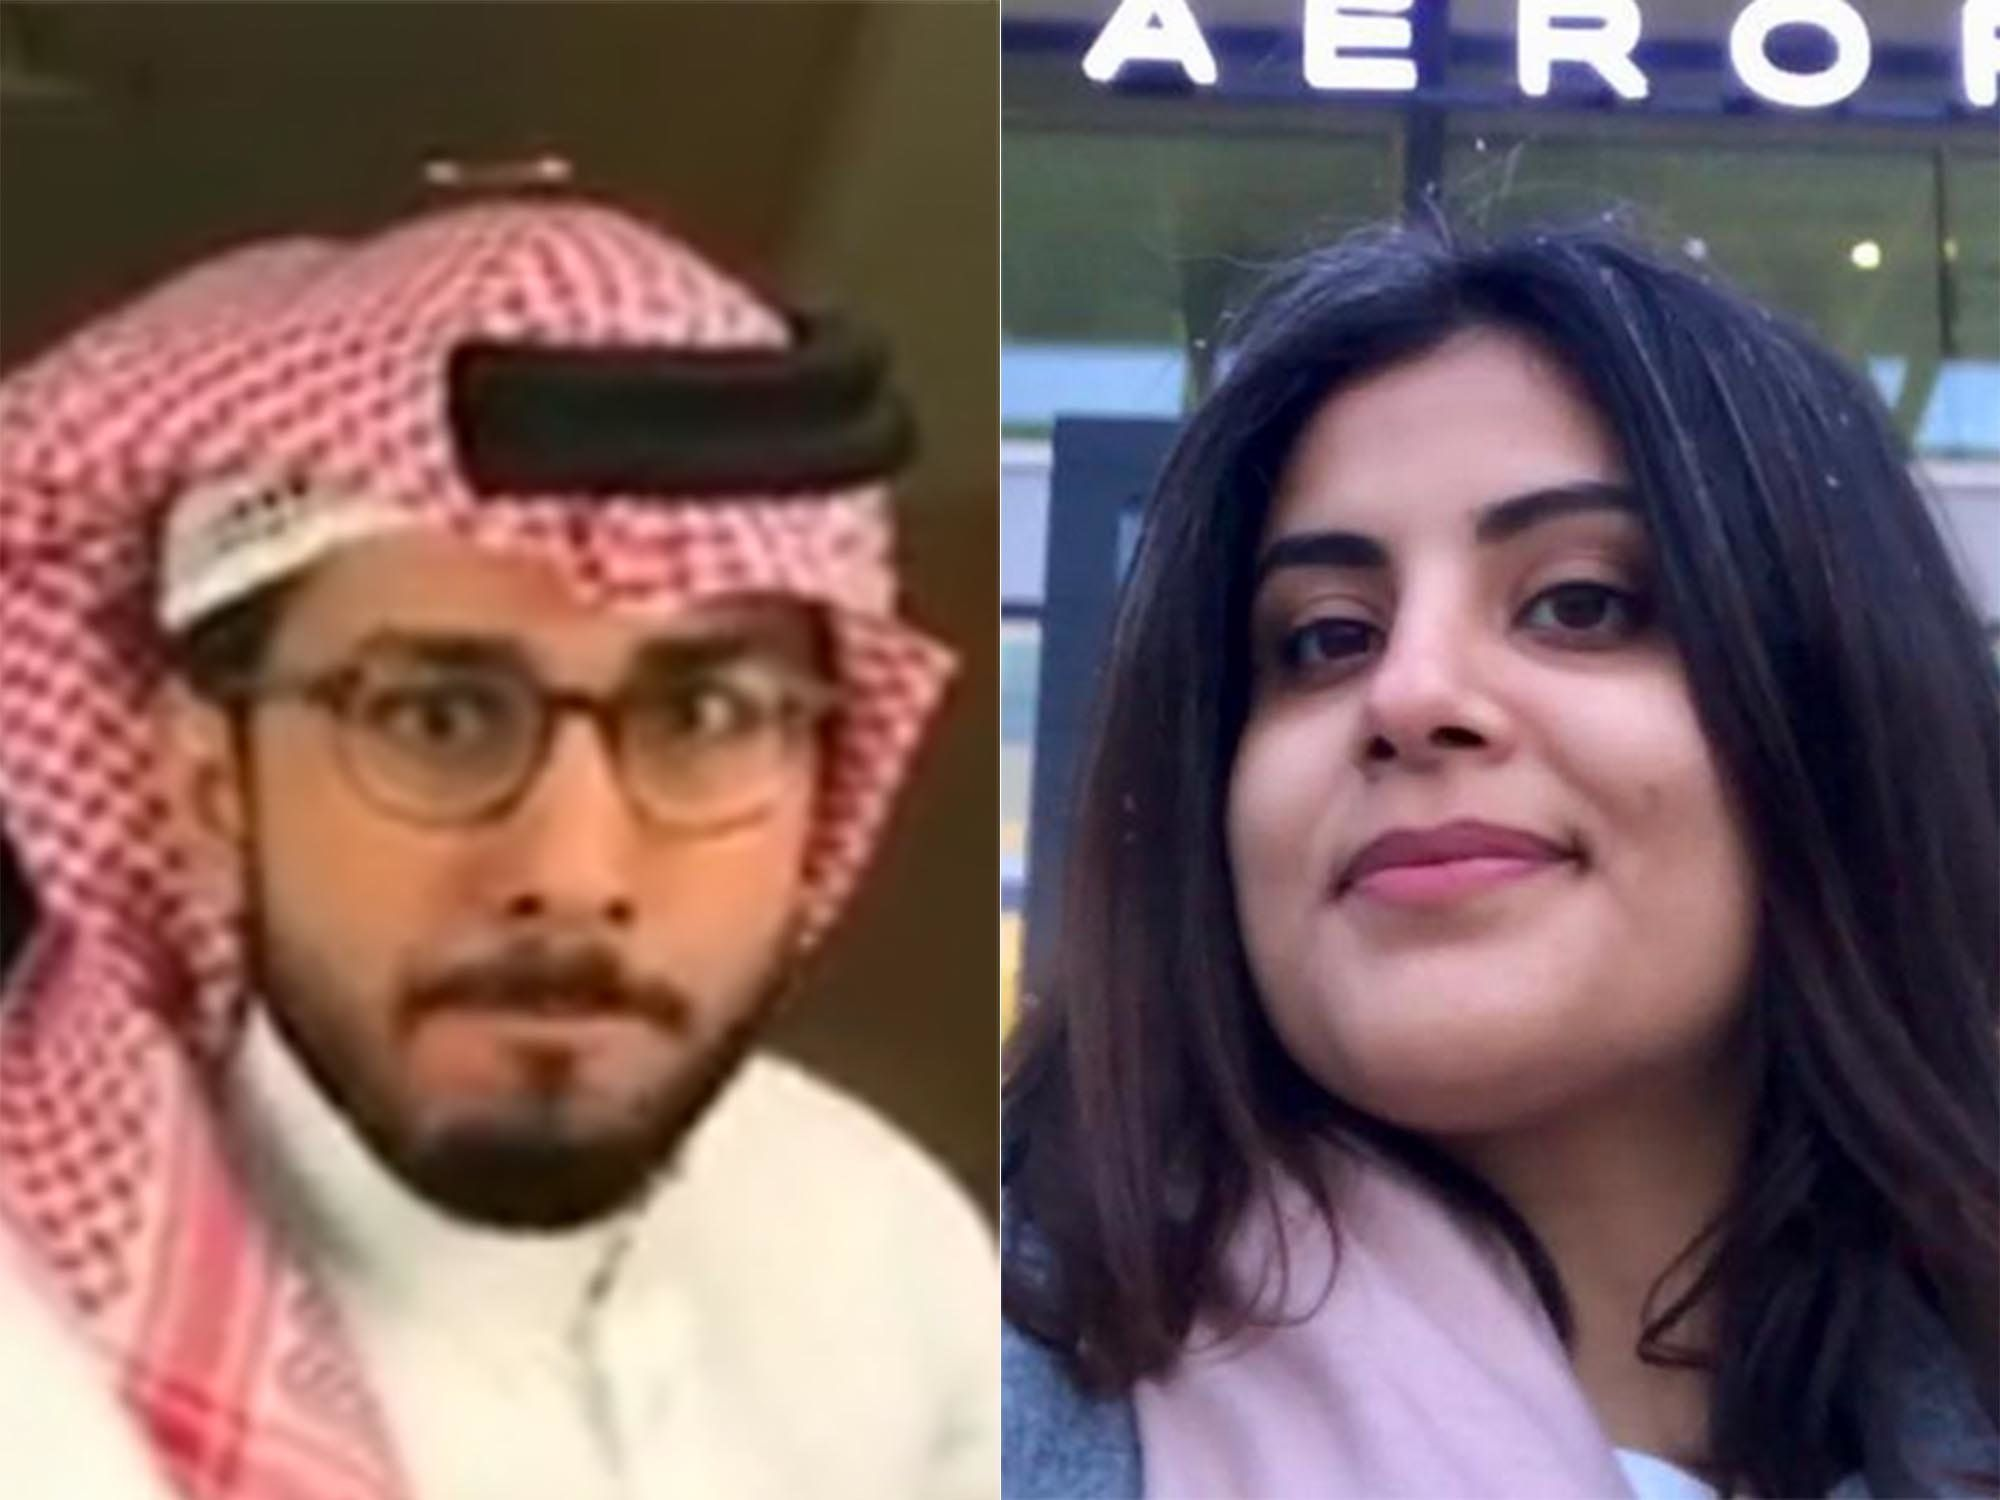 Fahad Albutairi (left) is a popular Saudi comedian. Loujain Hathloul (right) is a prominent women's rights activist in S